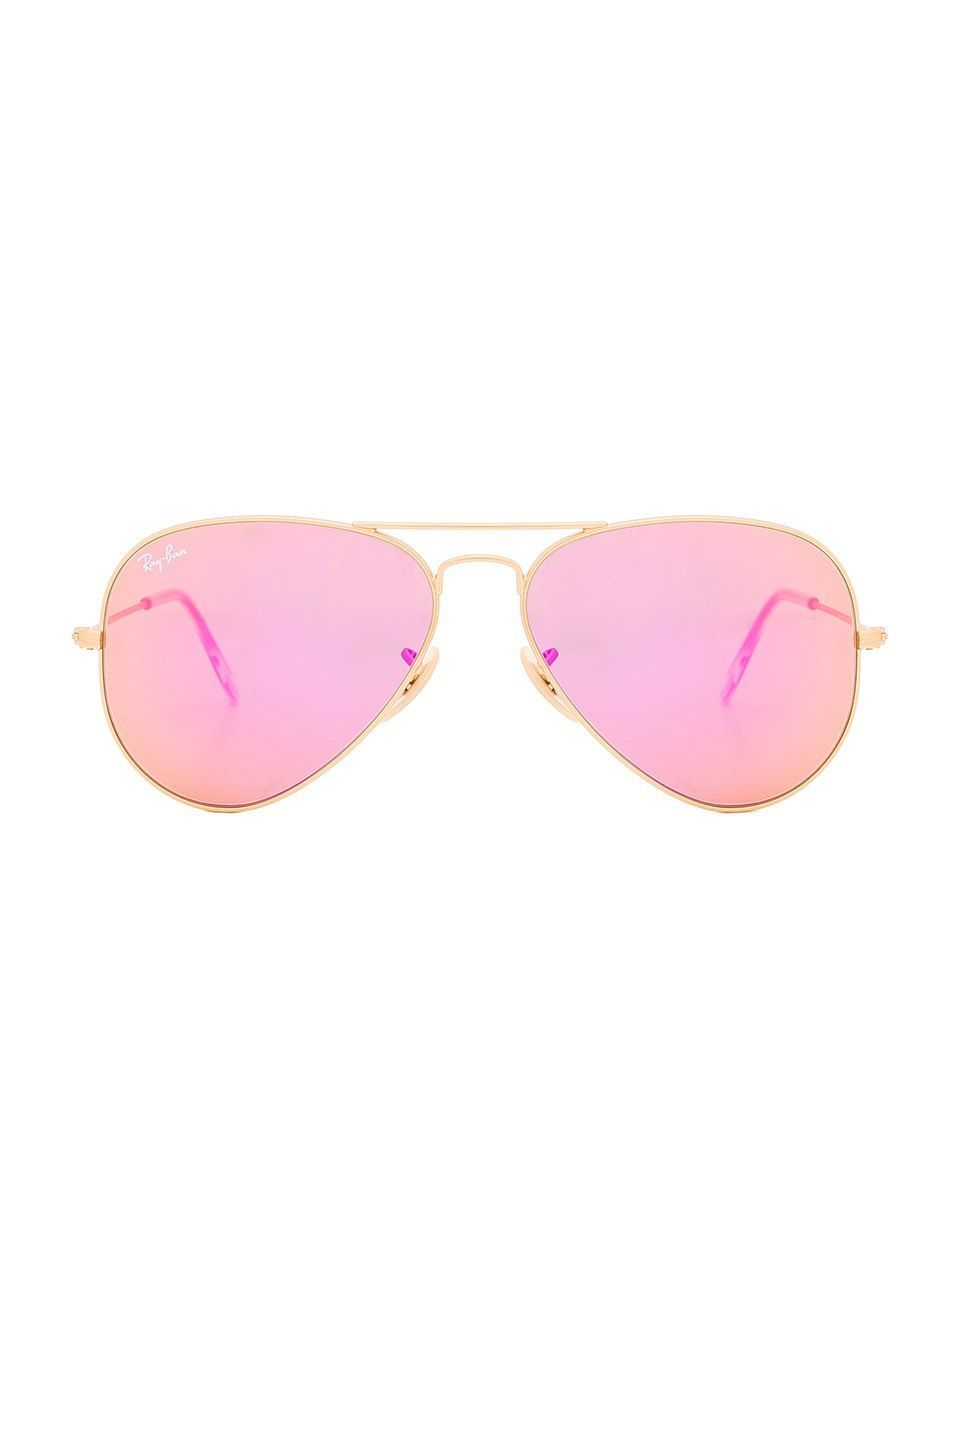 eb88d19c35e Ray-Ban Aviator Flash Lenses in Gold   Cyclamen Mirror